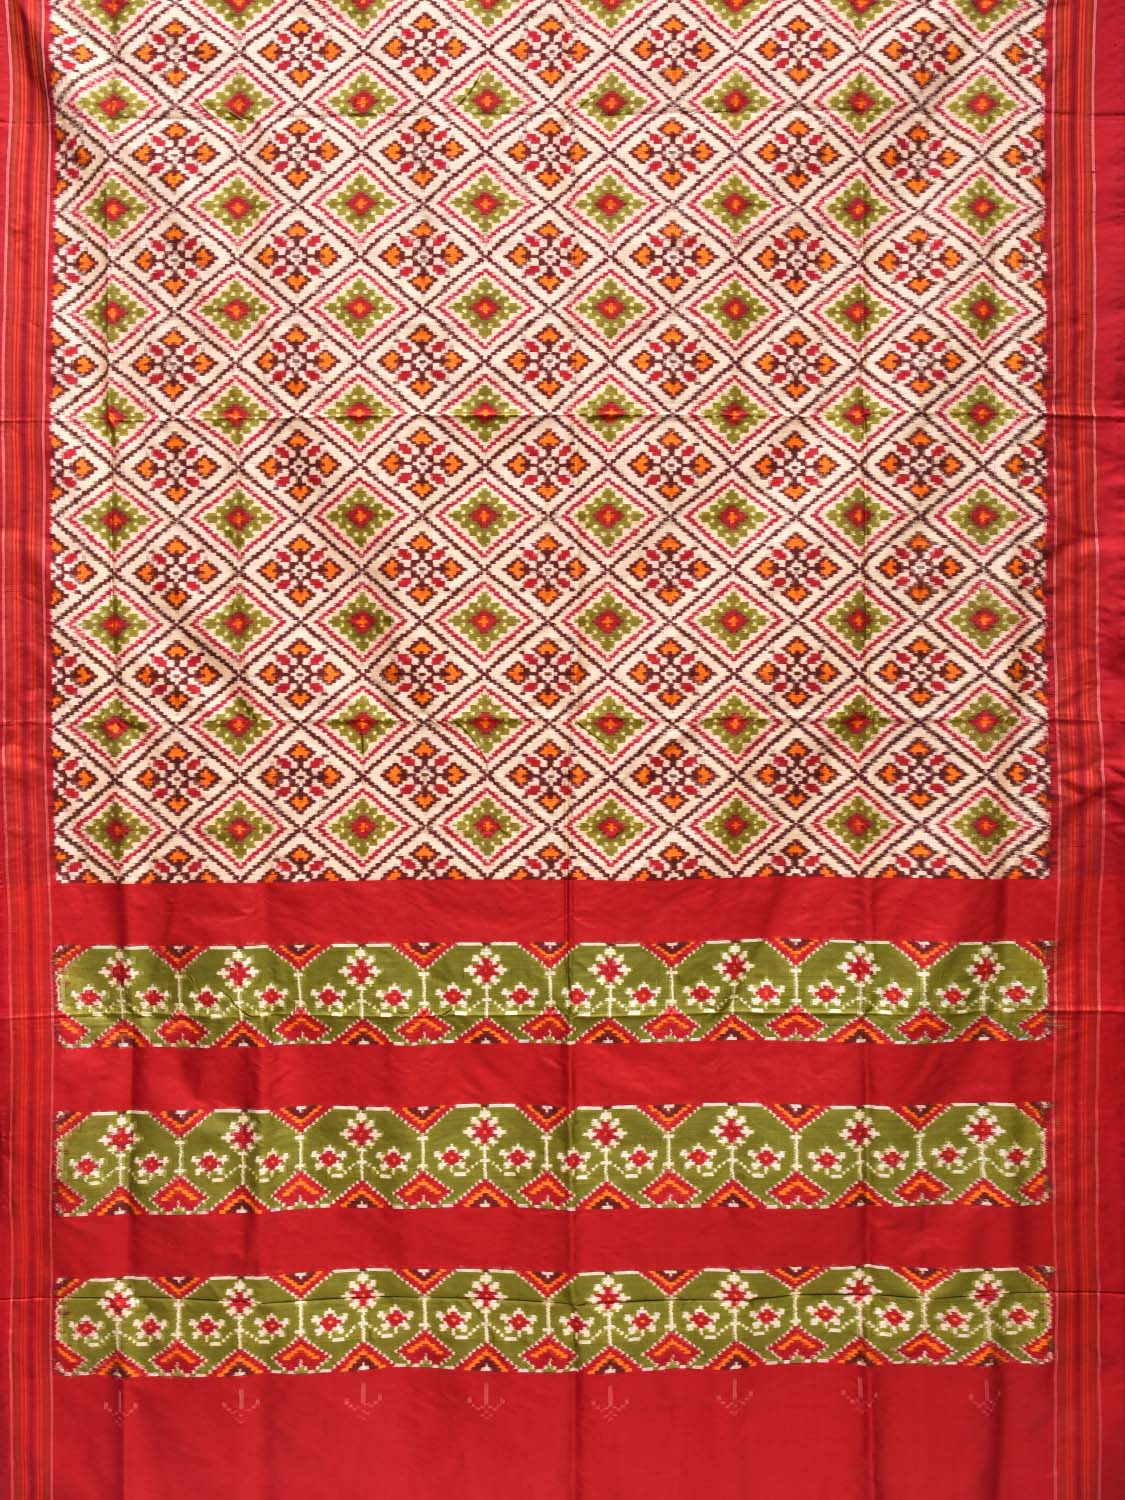 Cream and Red Pochampally Double Ikat Silk Handloom Saree with All Over Design i0551